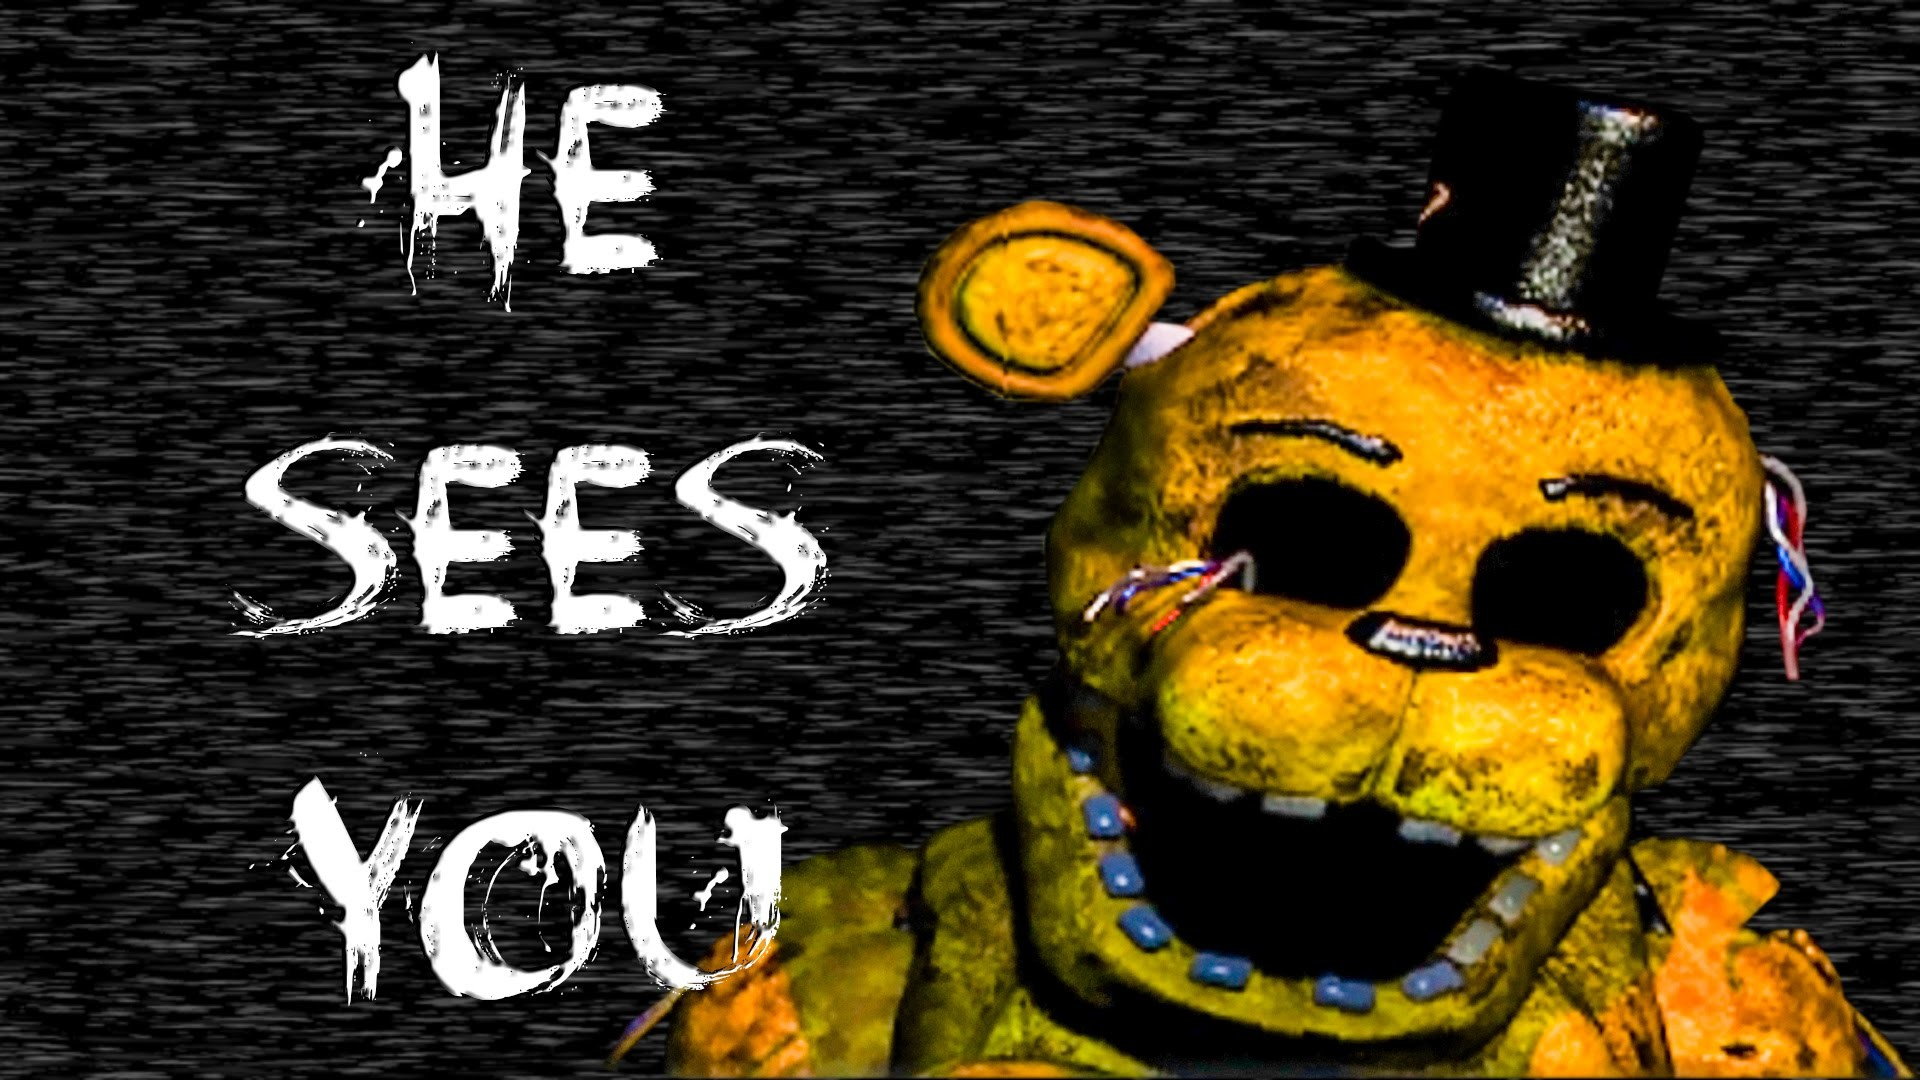 1920x1080 Five Nights At Freddys 2! THE PREQUEL!! - Night 6 - GOLDEN FREDDY HUGE  SCARE - YouTube